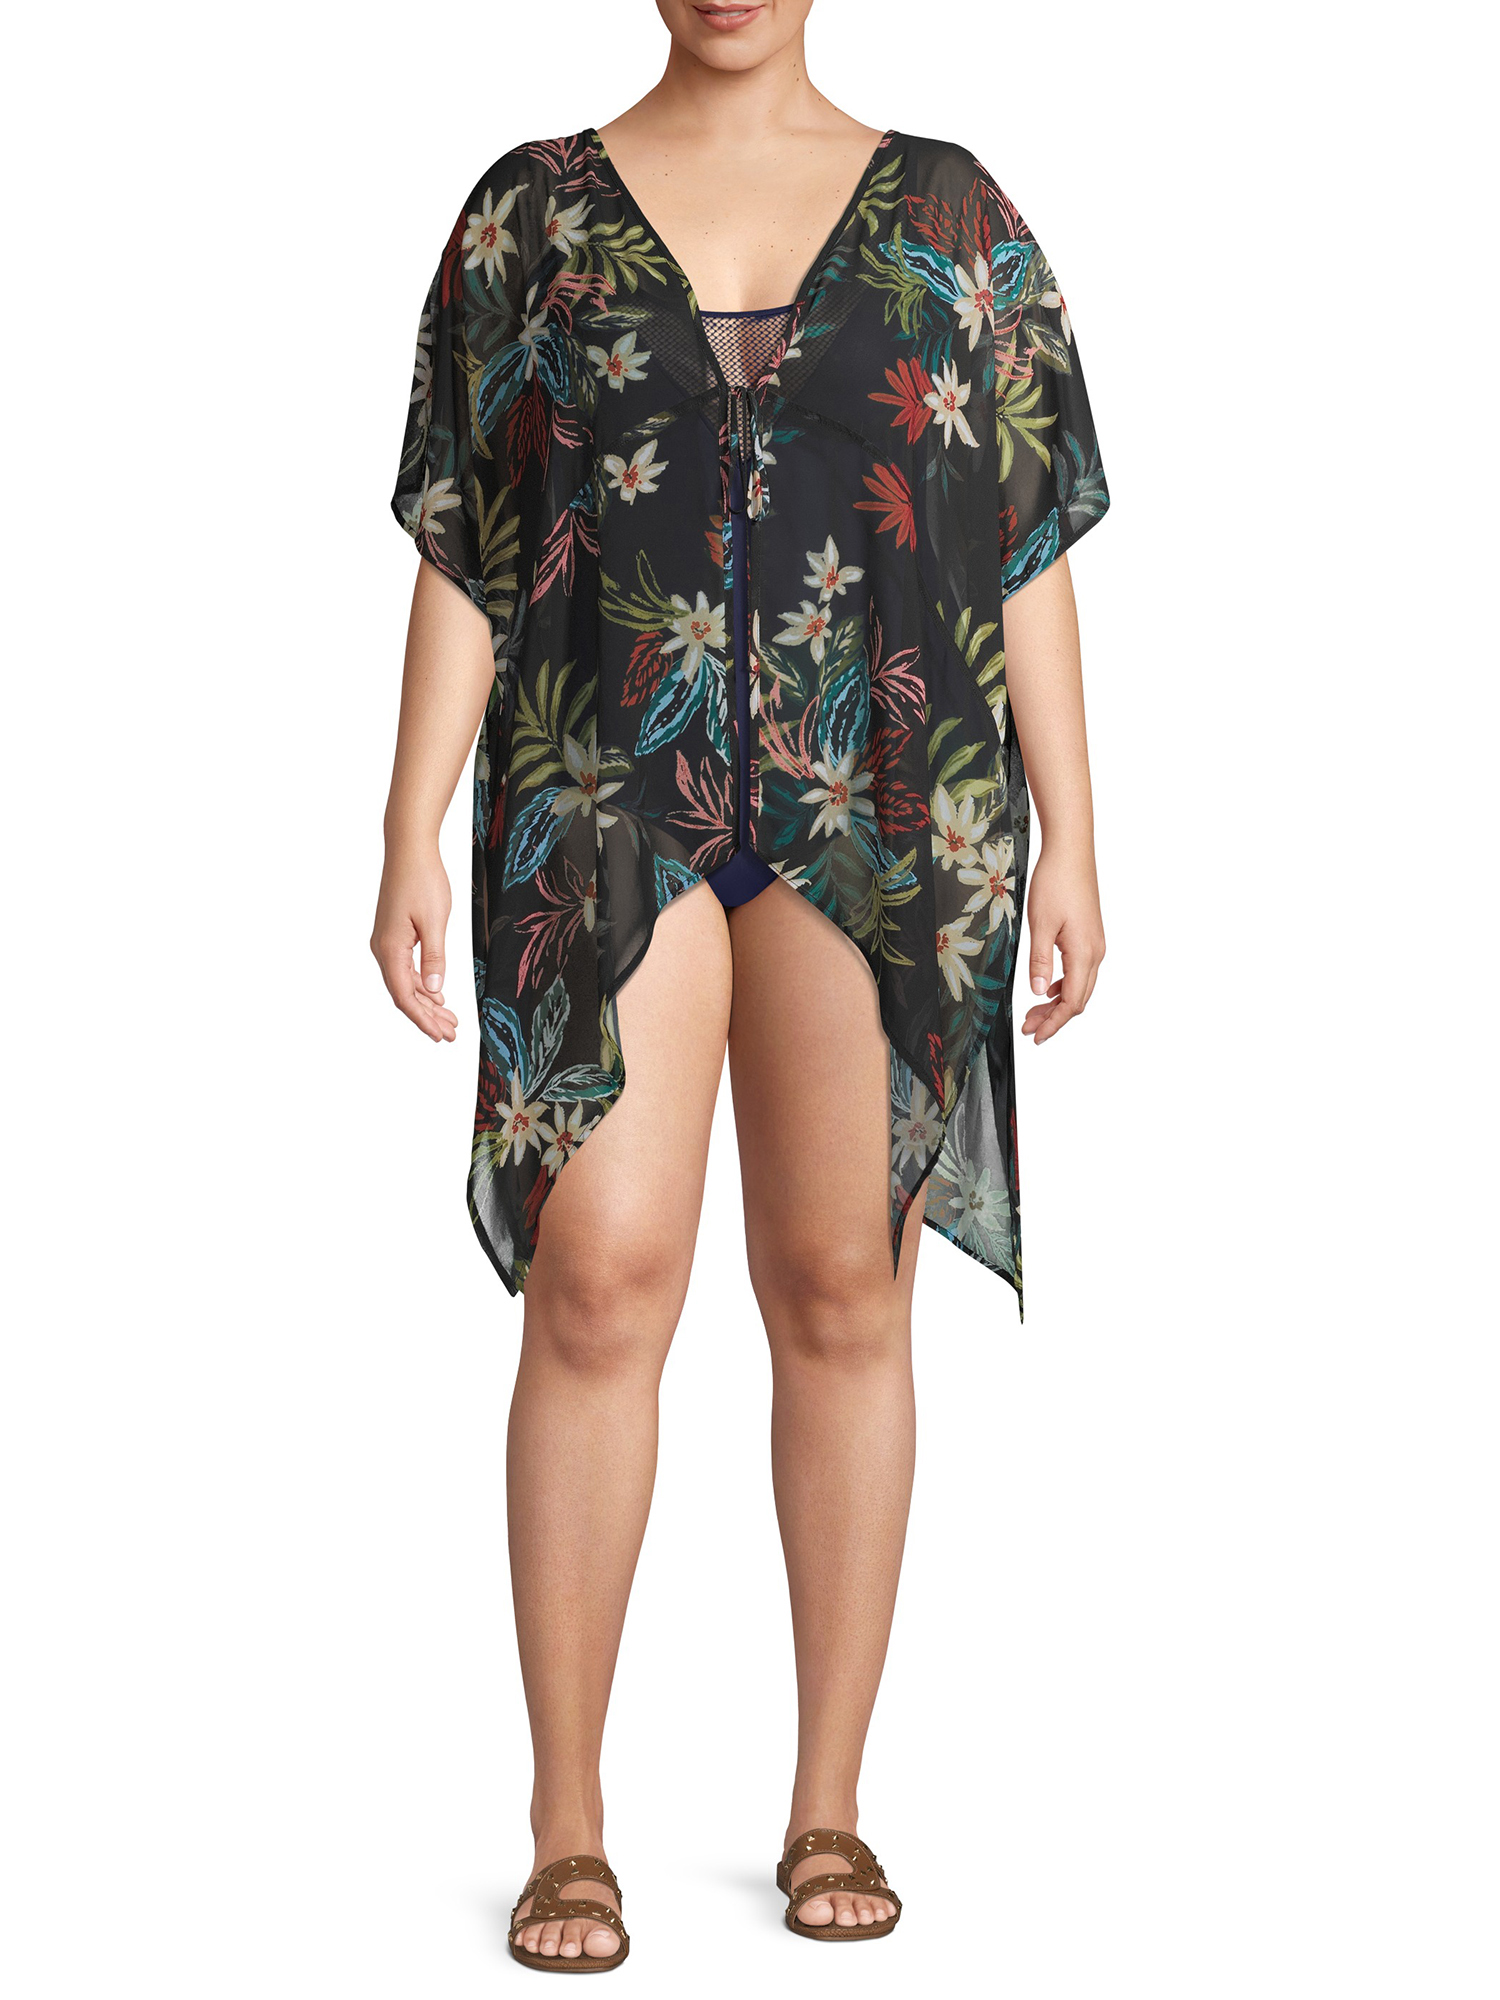 Swimsuits for All Womens Plus Size Nicole Zip Up Cover Up Hoodie